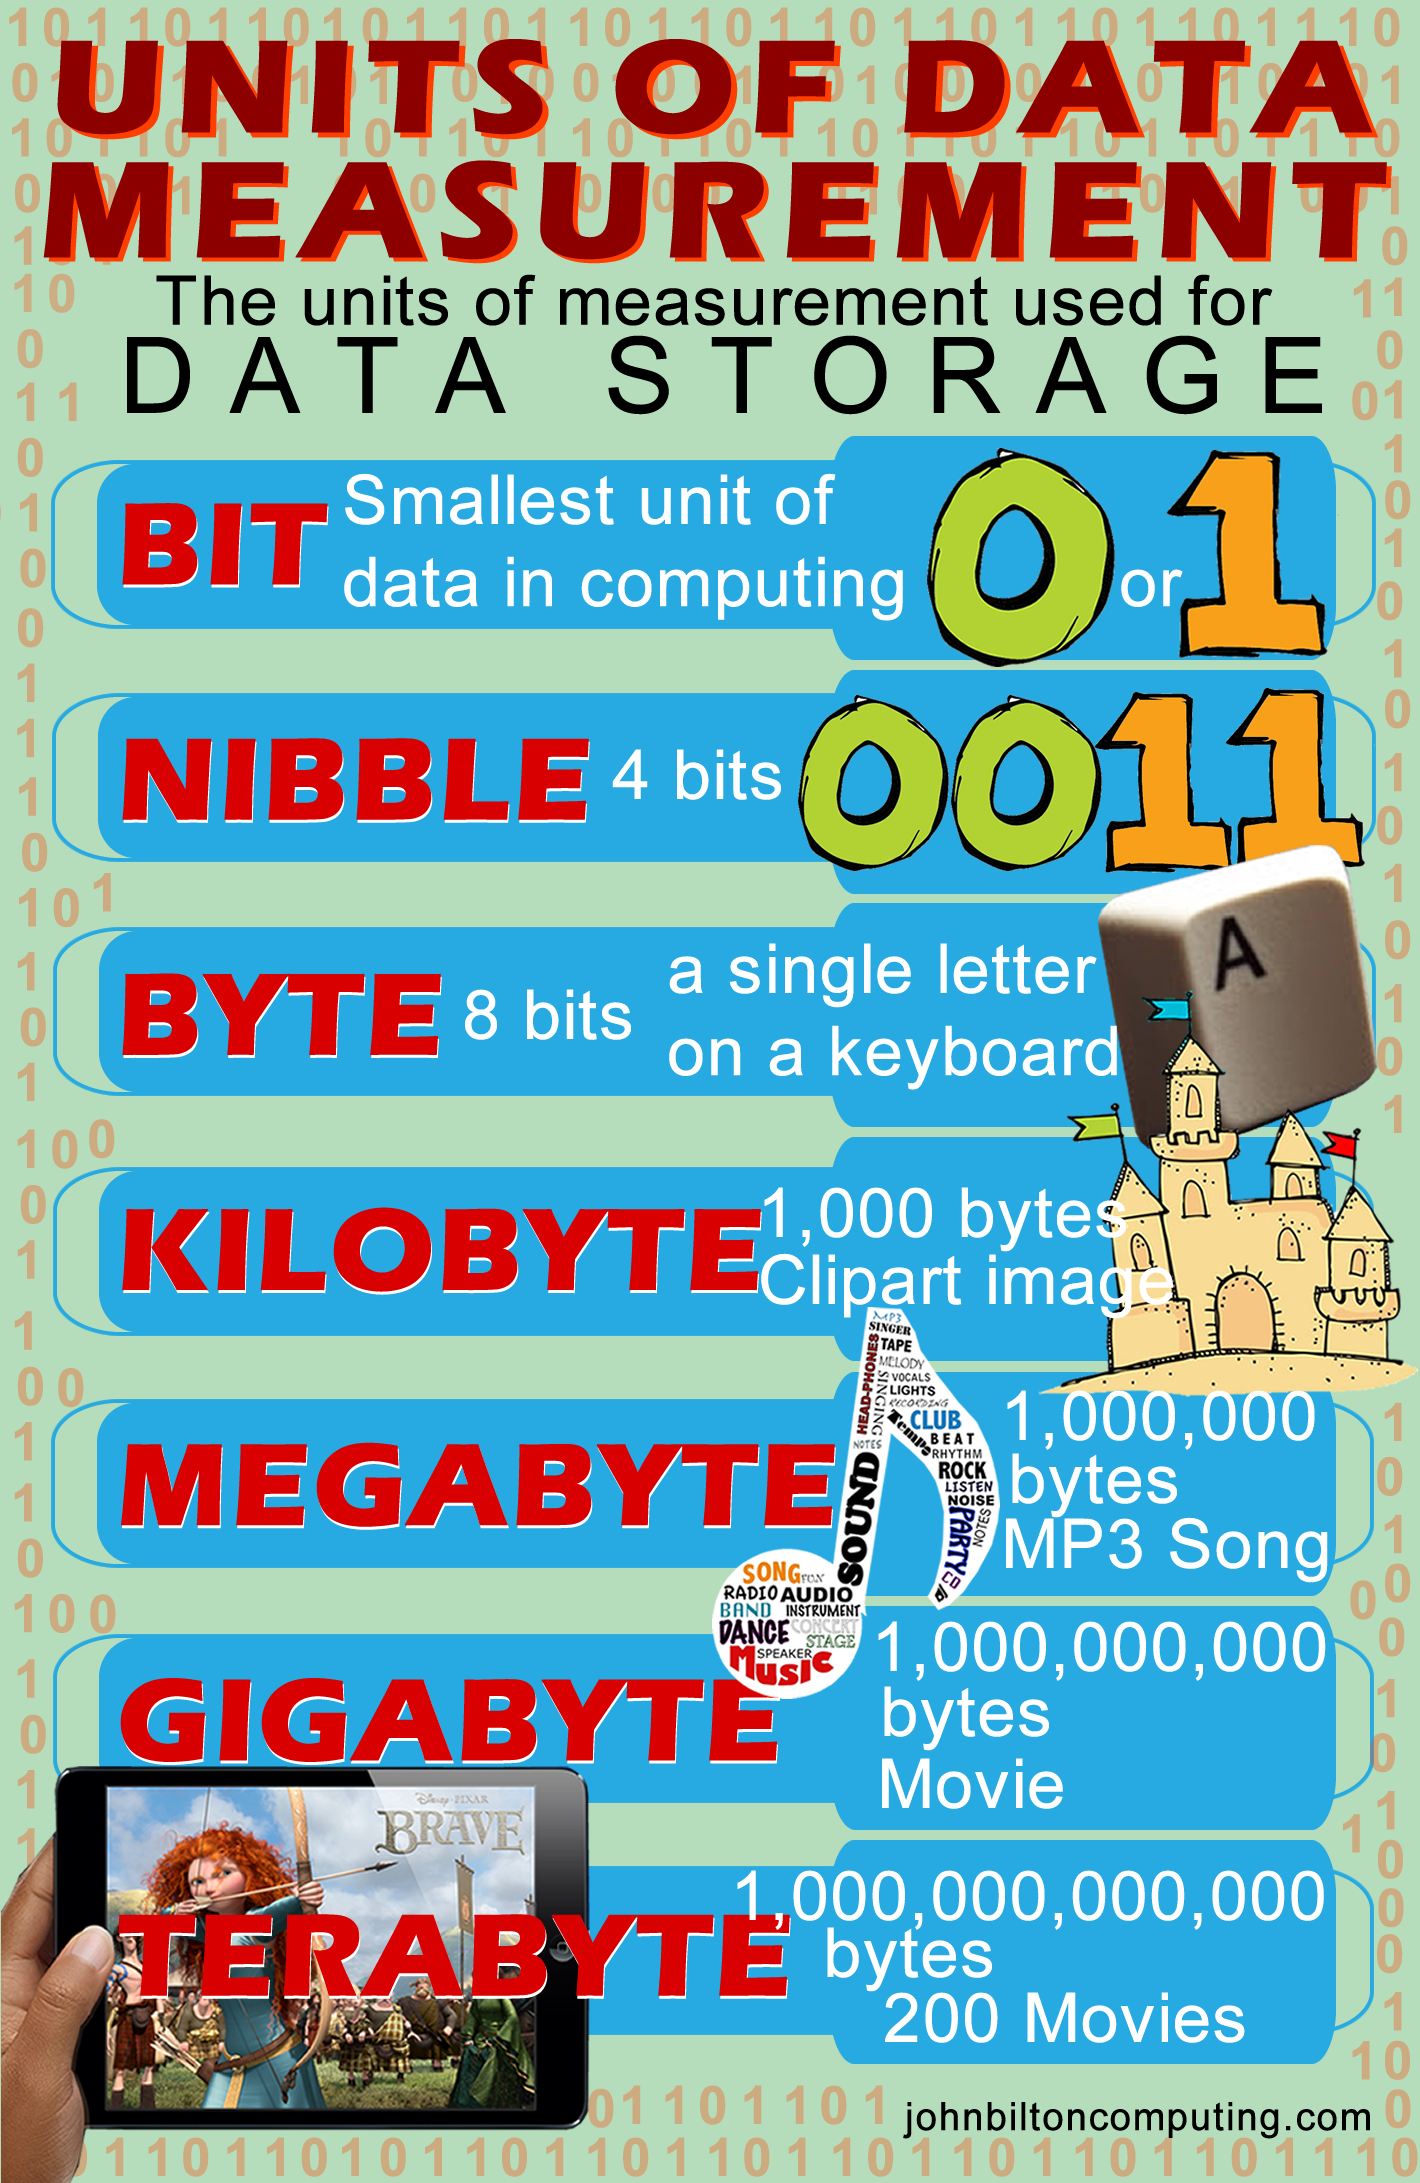 Units of Data Measurement, explaining bit, nibble, byte